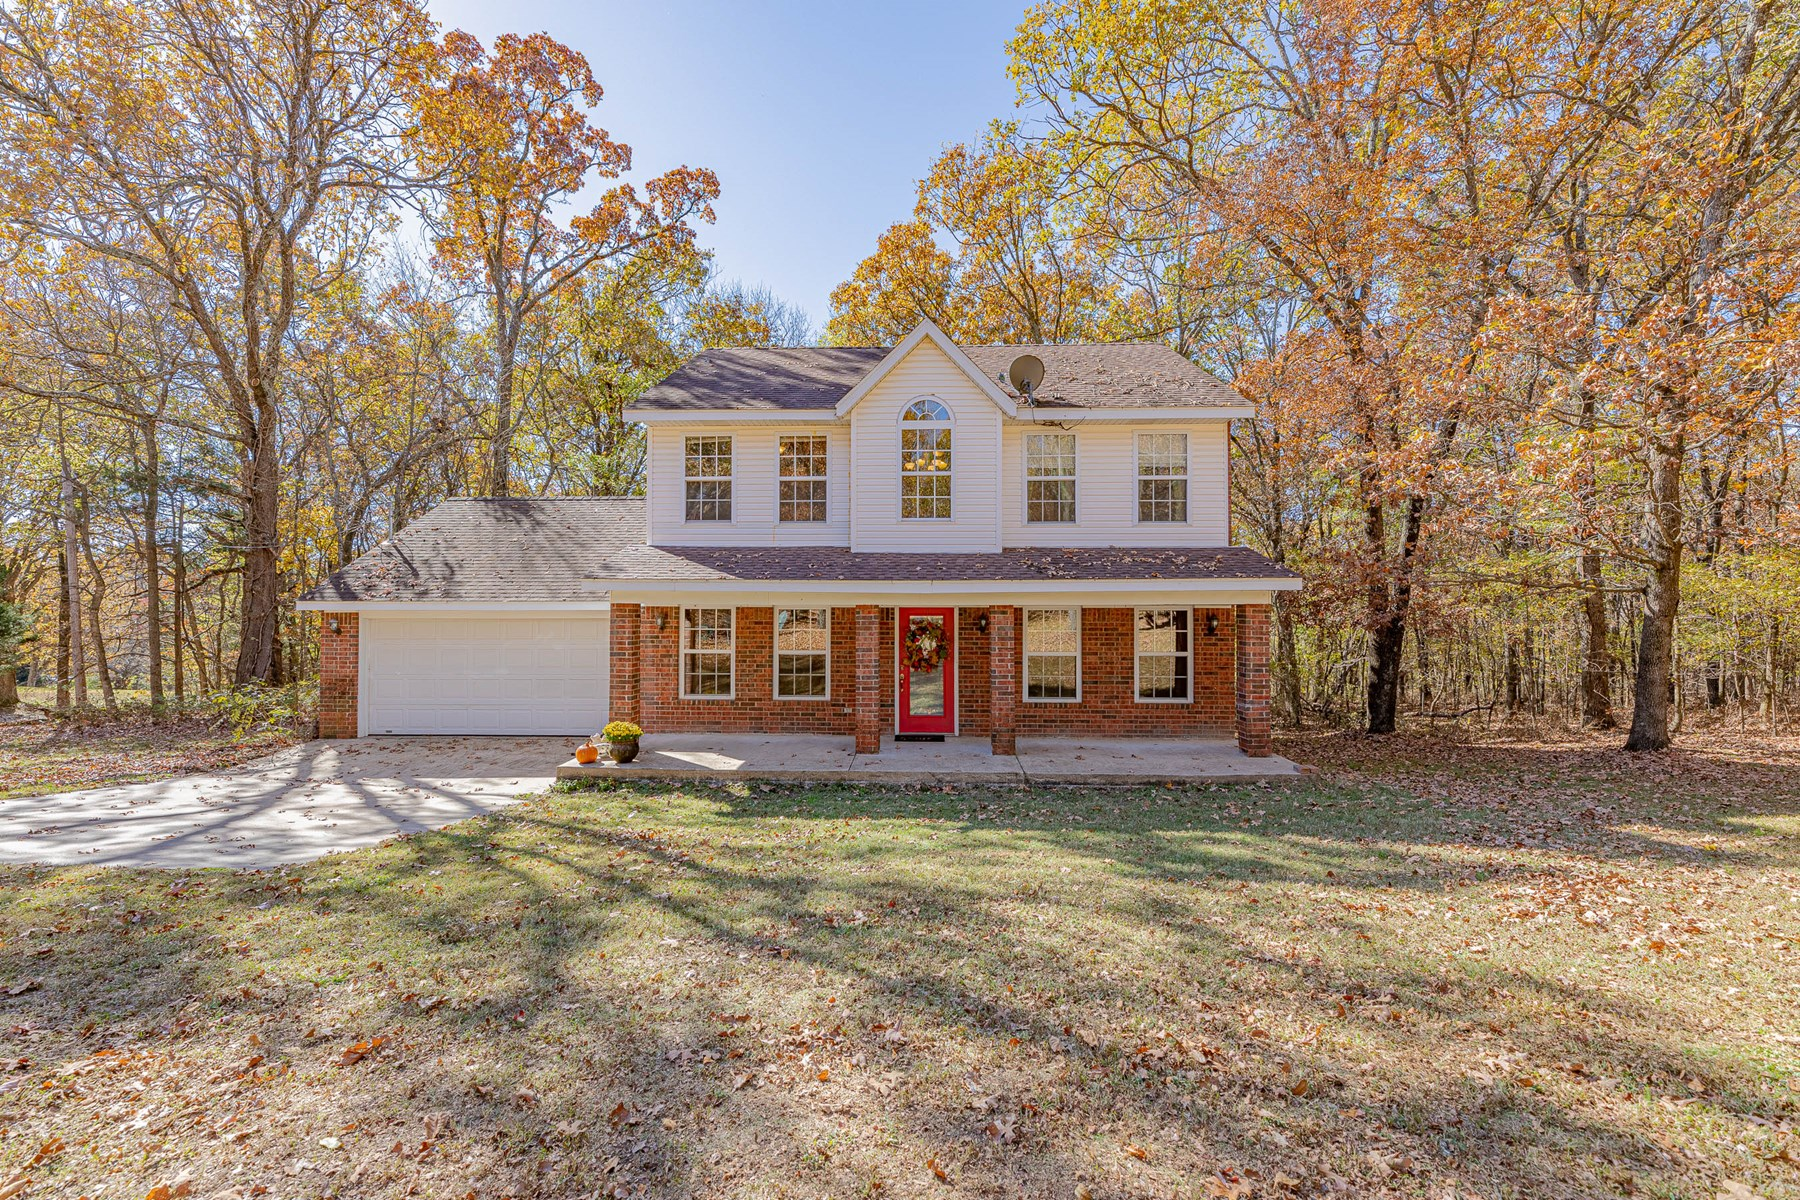 Northwest Arkansas Country Home For Sale on 3 Acres